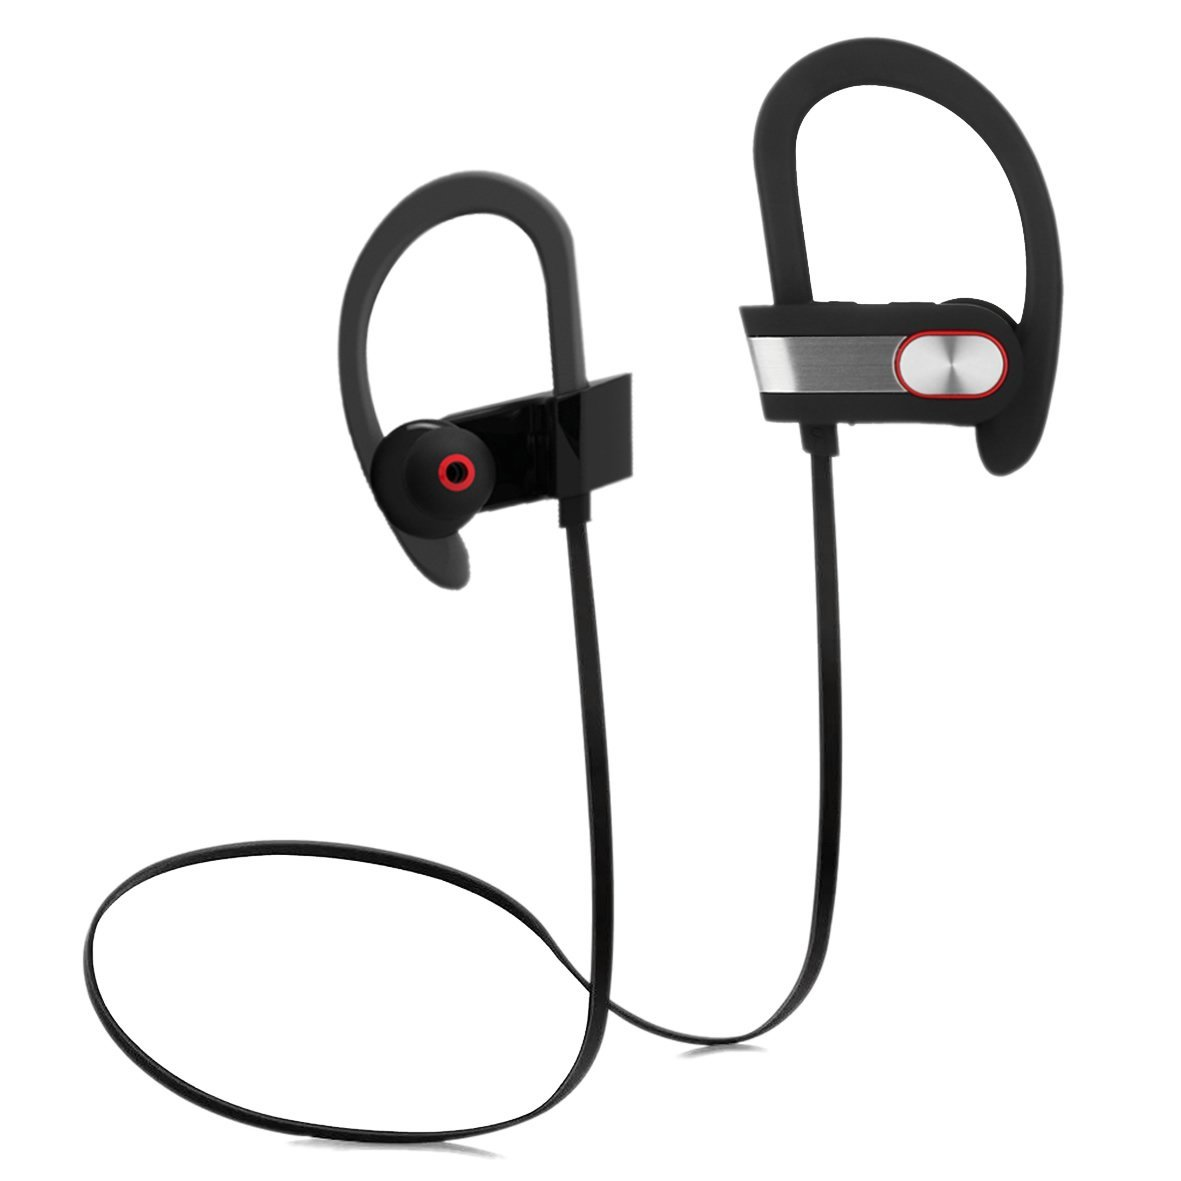 Over-Ear Bluetooth Headphone Wireless Sport Headset Sweatproof Earbud Behind-Ear Secure Comfort Fit, Crystal Clear Sound with Strong Heavy Bass, iPhone Android Compatible, Hands-Free Calling Mic